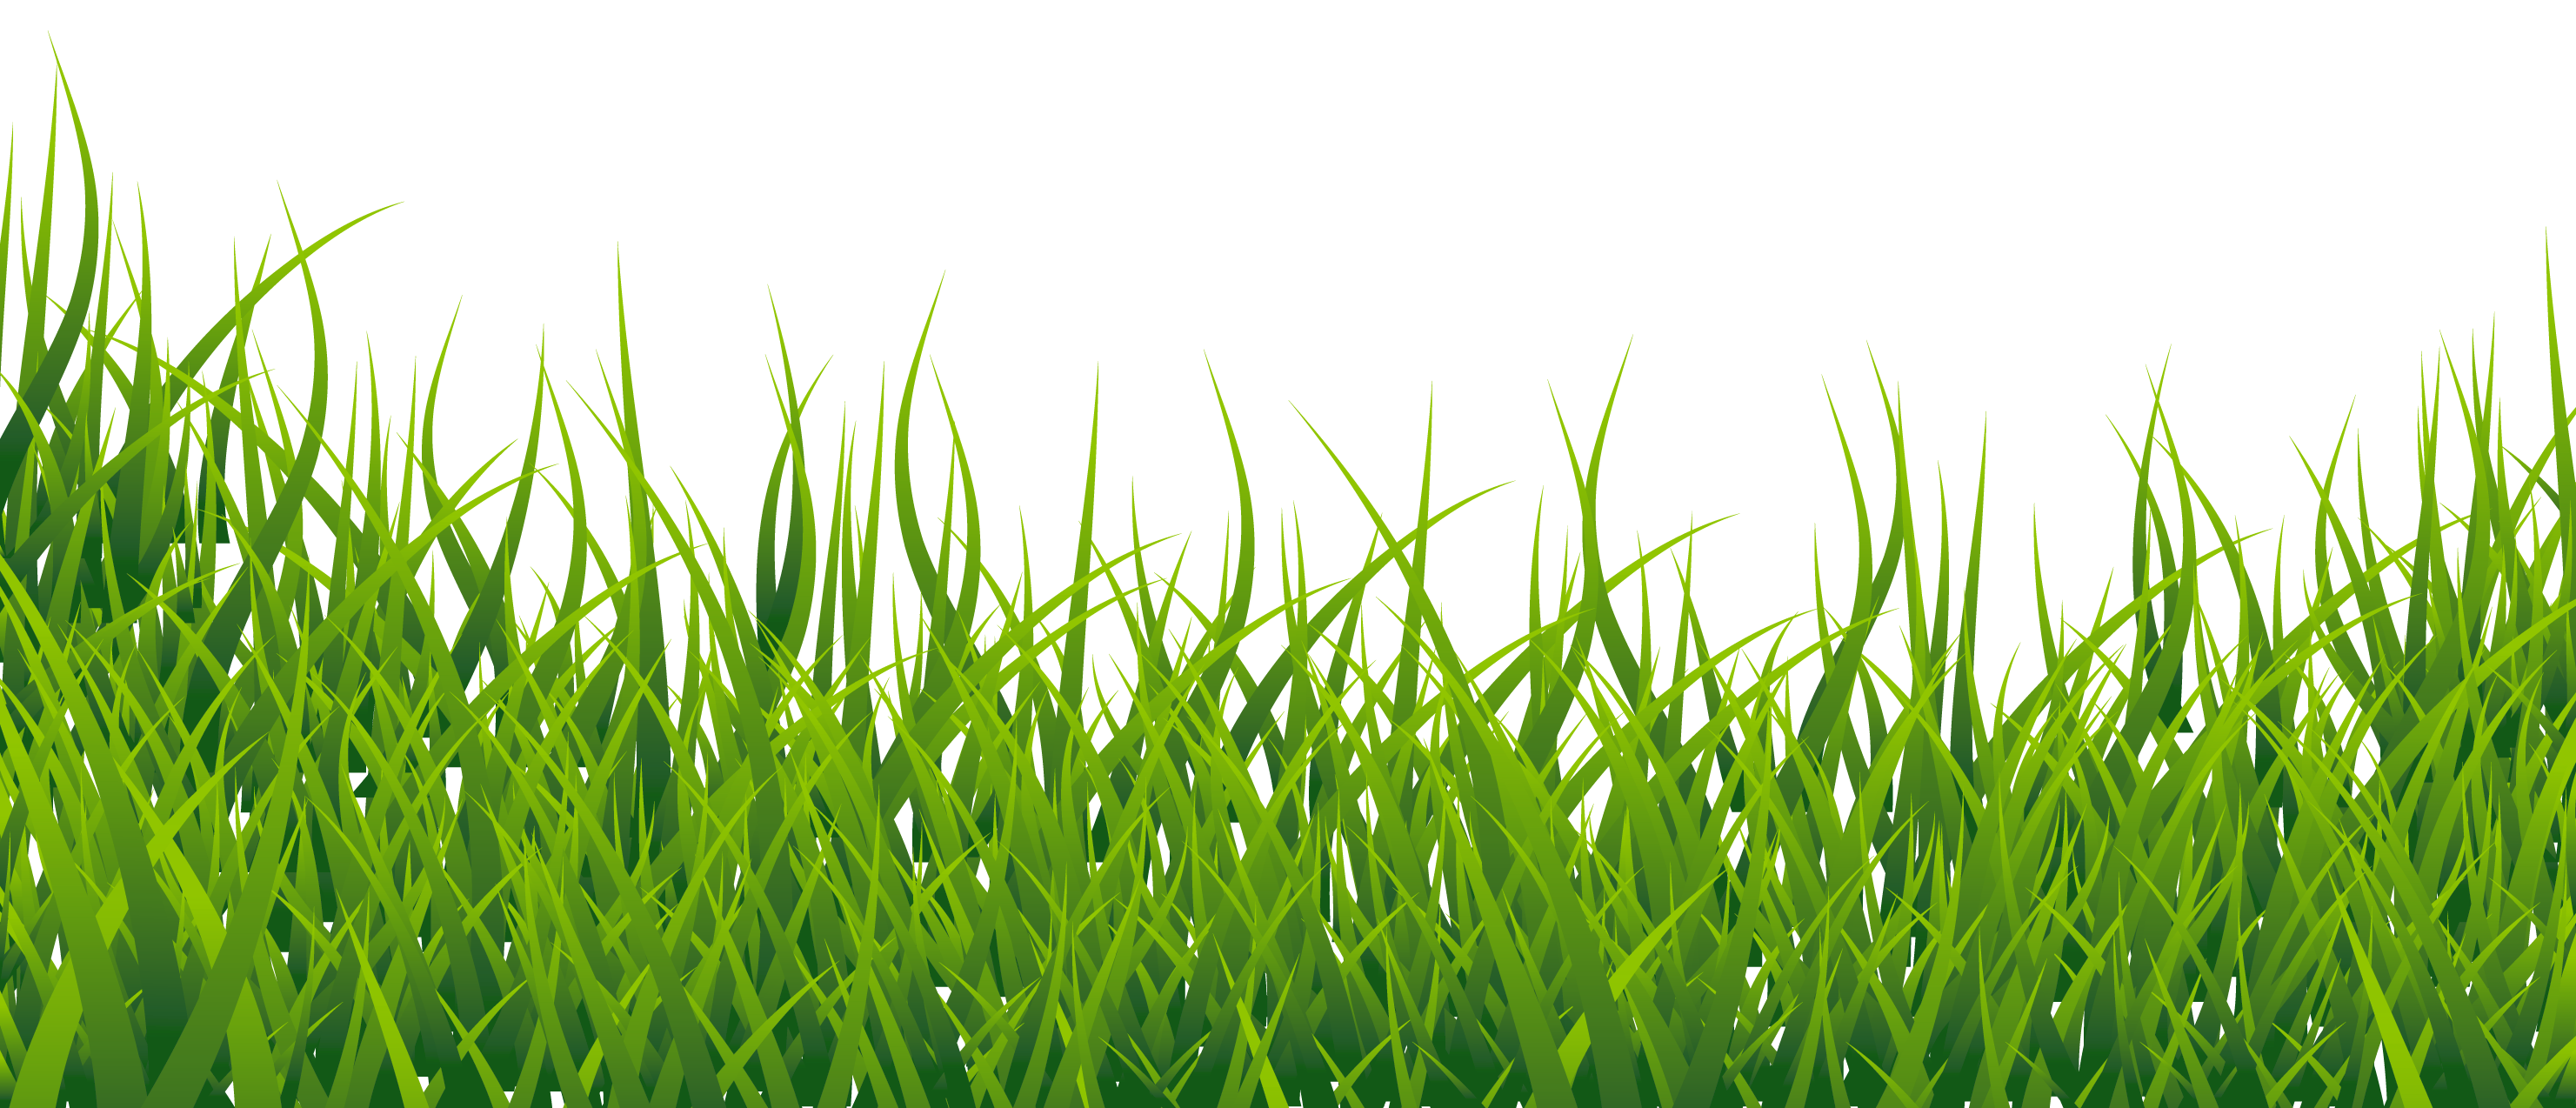 Grass Hd Png Images Grass Texture Clipart Free Download Free Transparent Png Logos